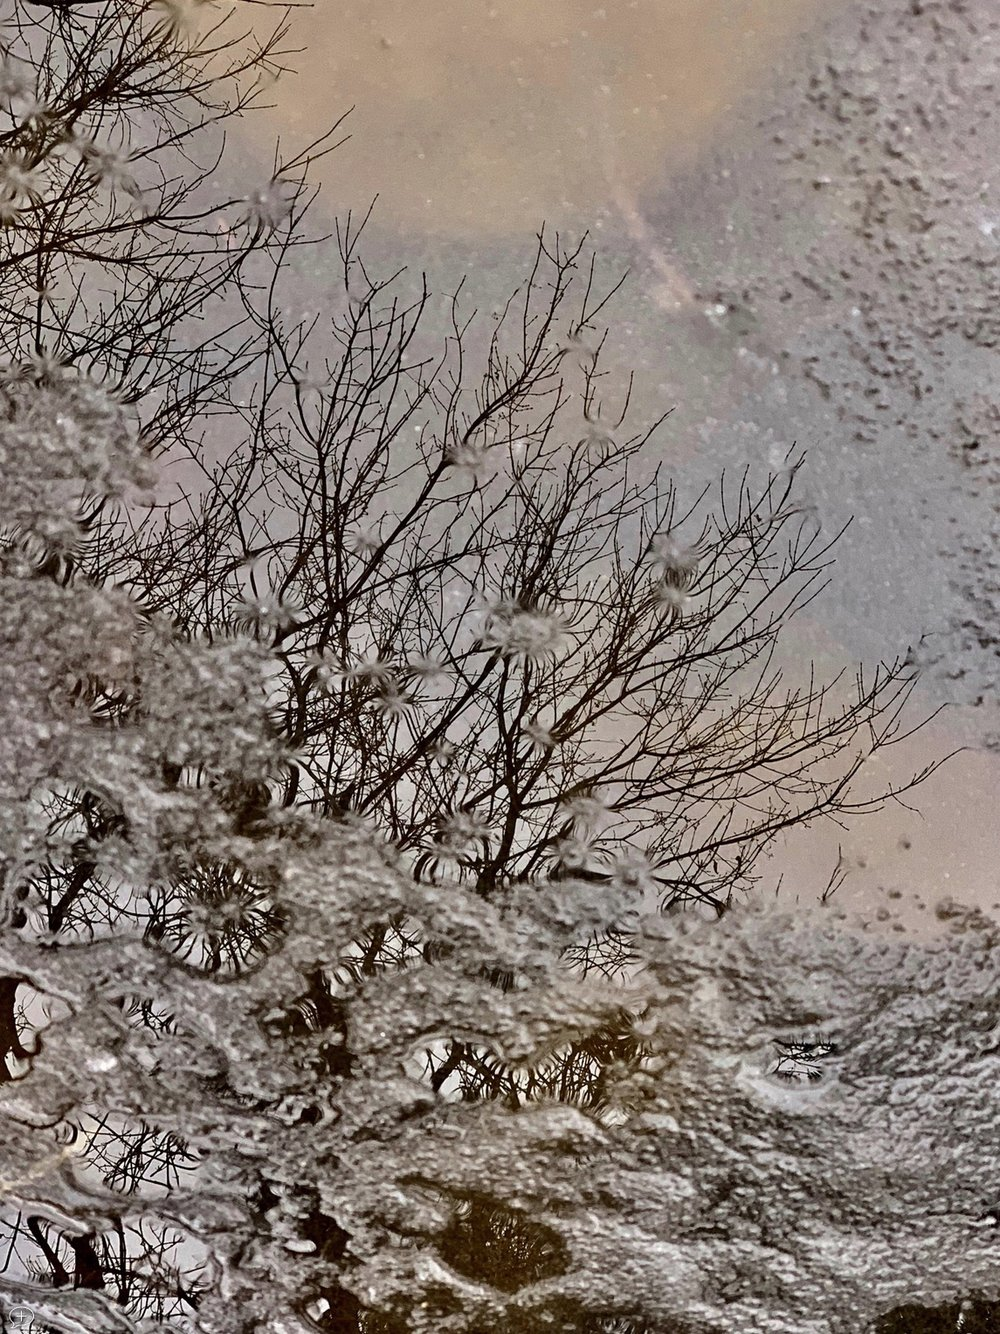 """7.  Reflections in my Pond-2.  iPhone XS, 2018. Saratoga Springs, NY. (Canvas Photo, 18"""" x 24.""""). This photo, taken 10 days after the previous one, shows a much different view, more impressionistic. That's snow frozen onto the surface, with ice barely hiding lily pads underneath.  ©2018 Sean Walmsley;"""